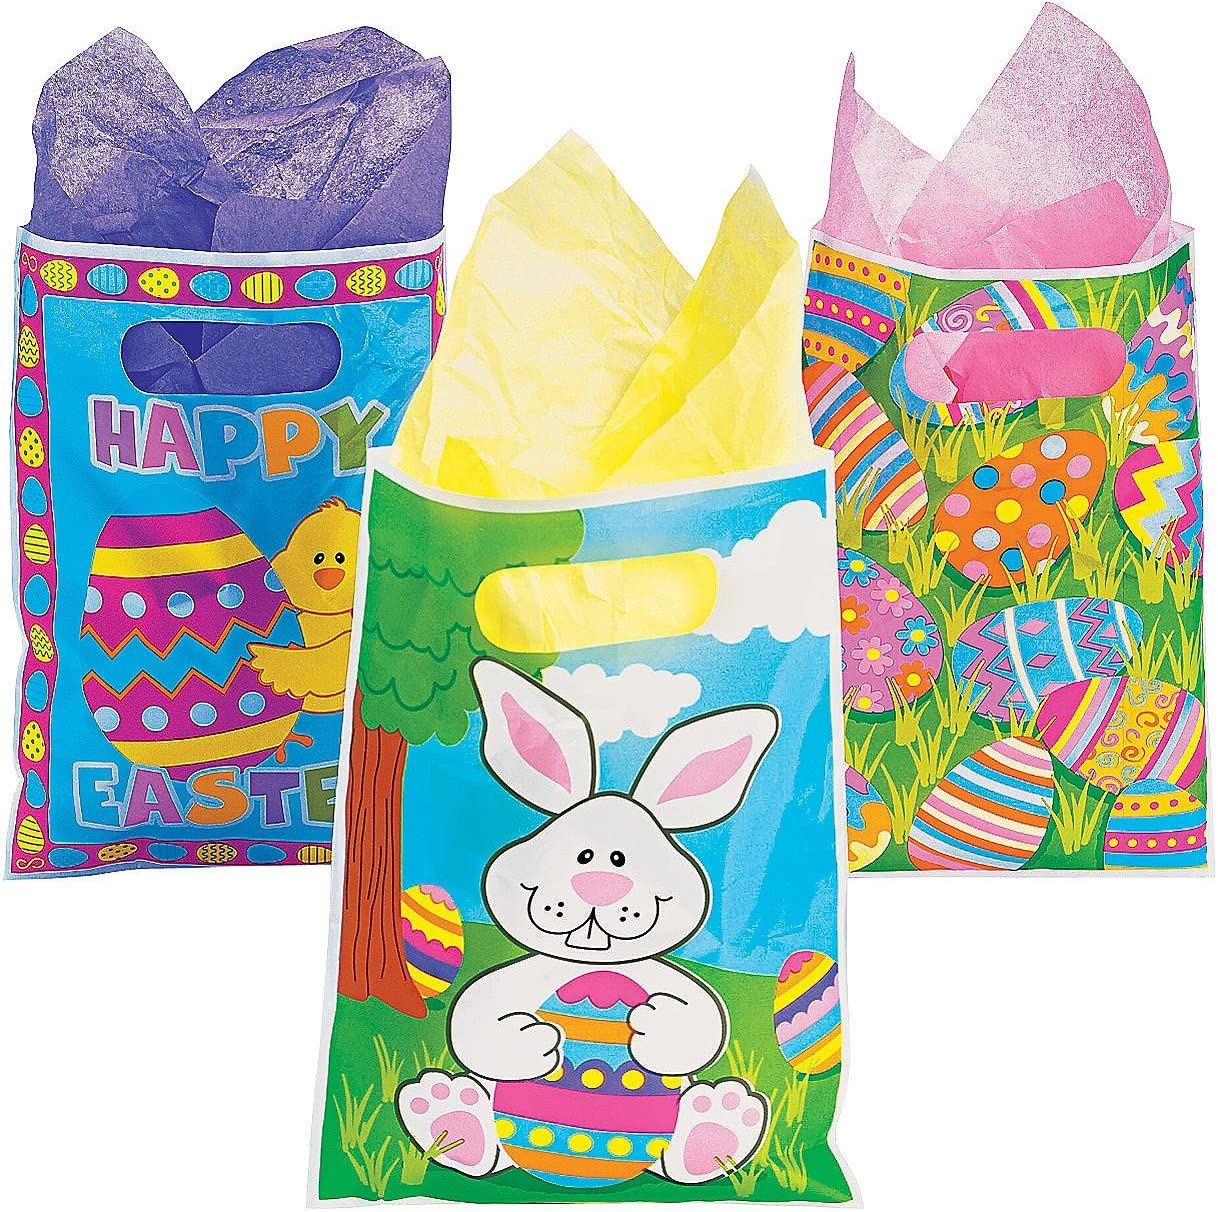 green tissue Miniature Gift Bag with Easter Basket Full of Chicks